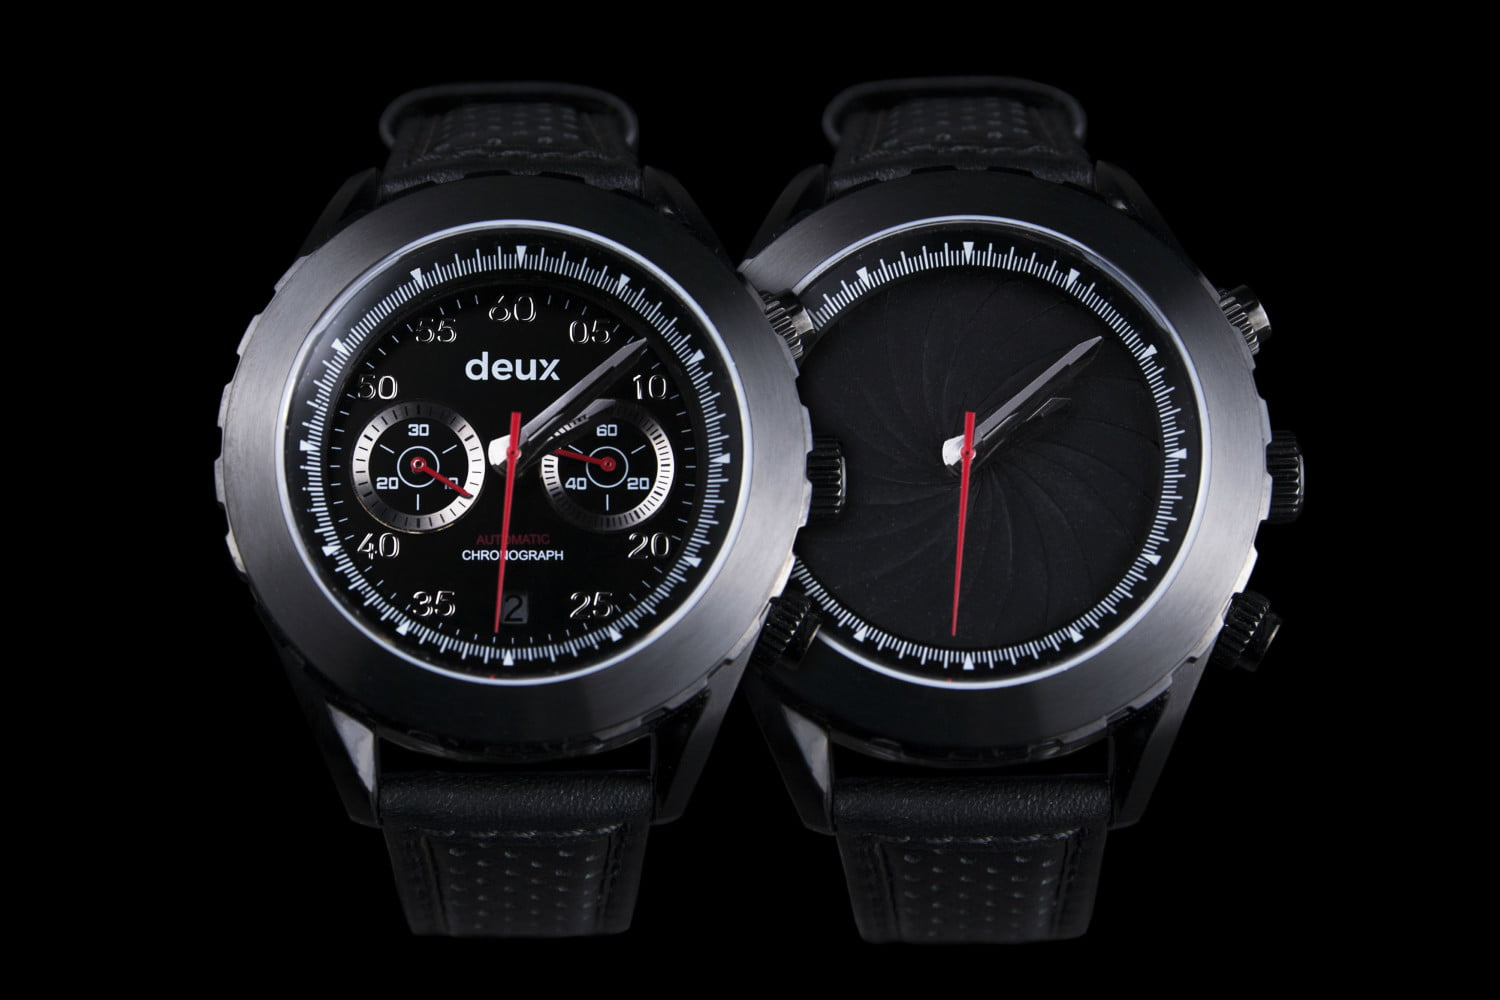 deux watches dual faced chronograph watch 3